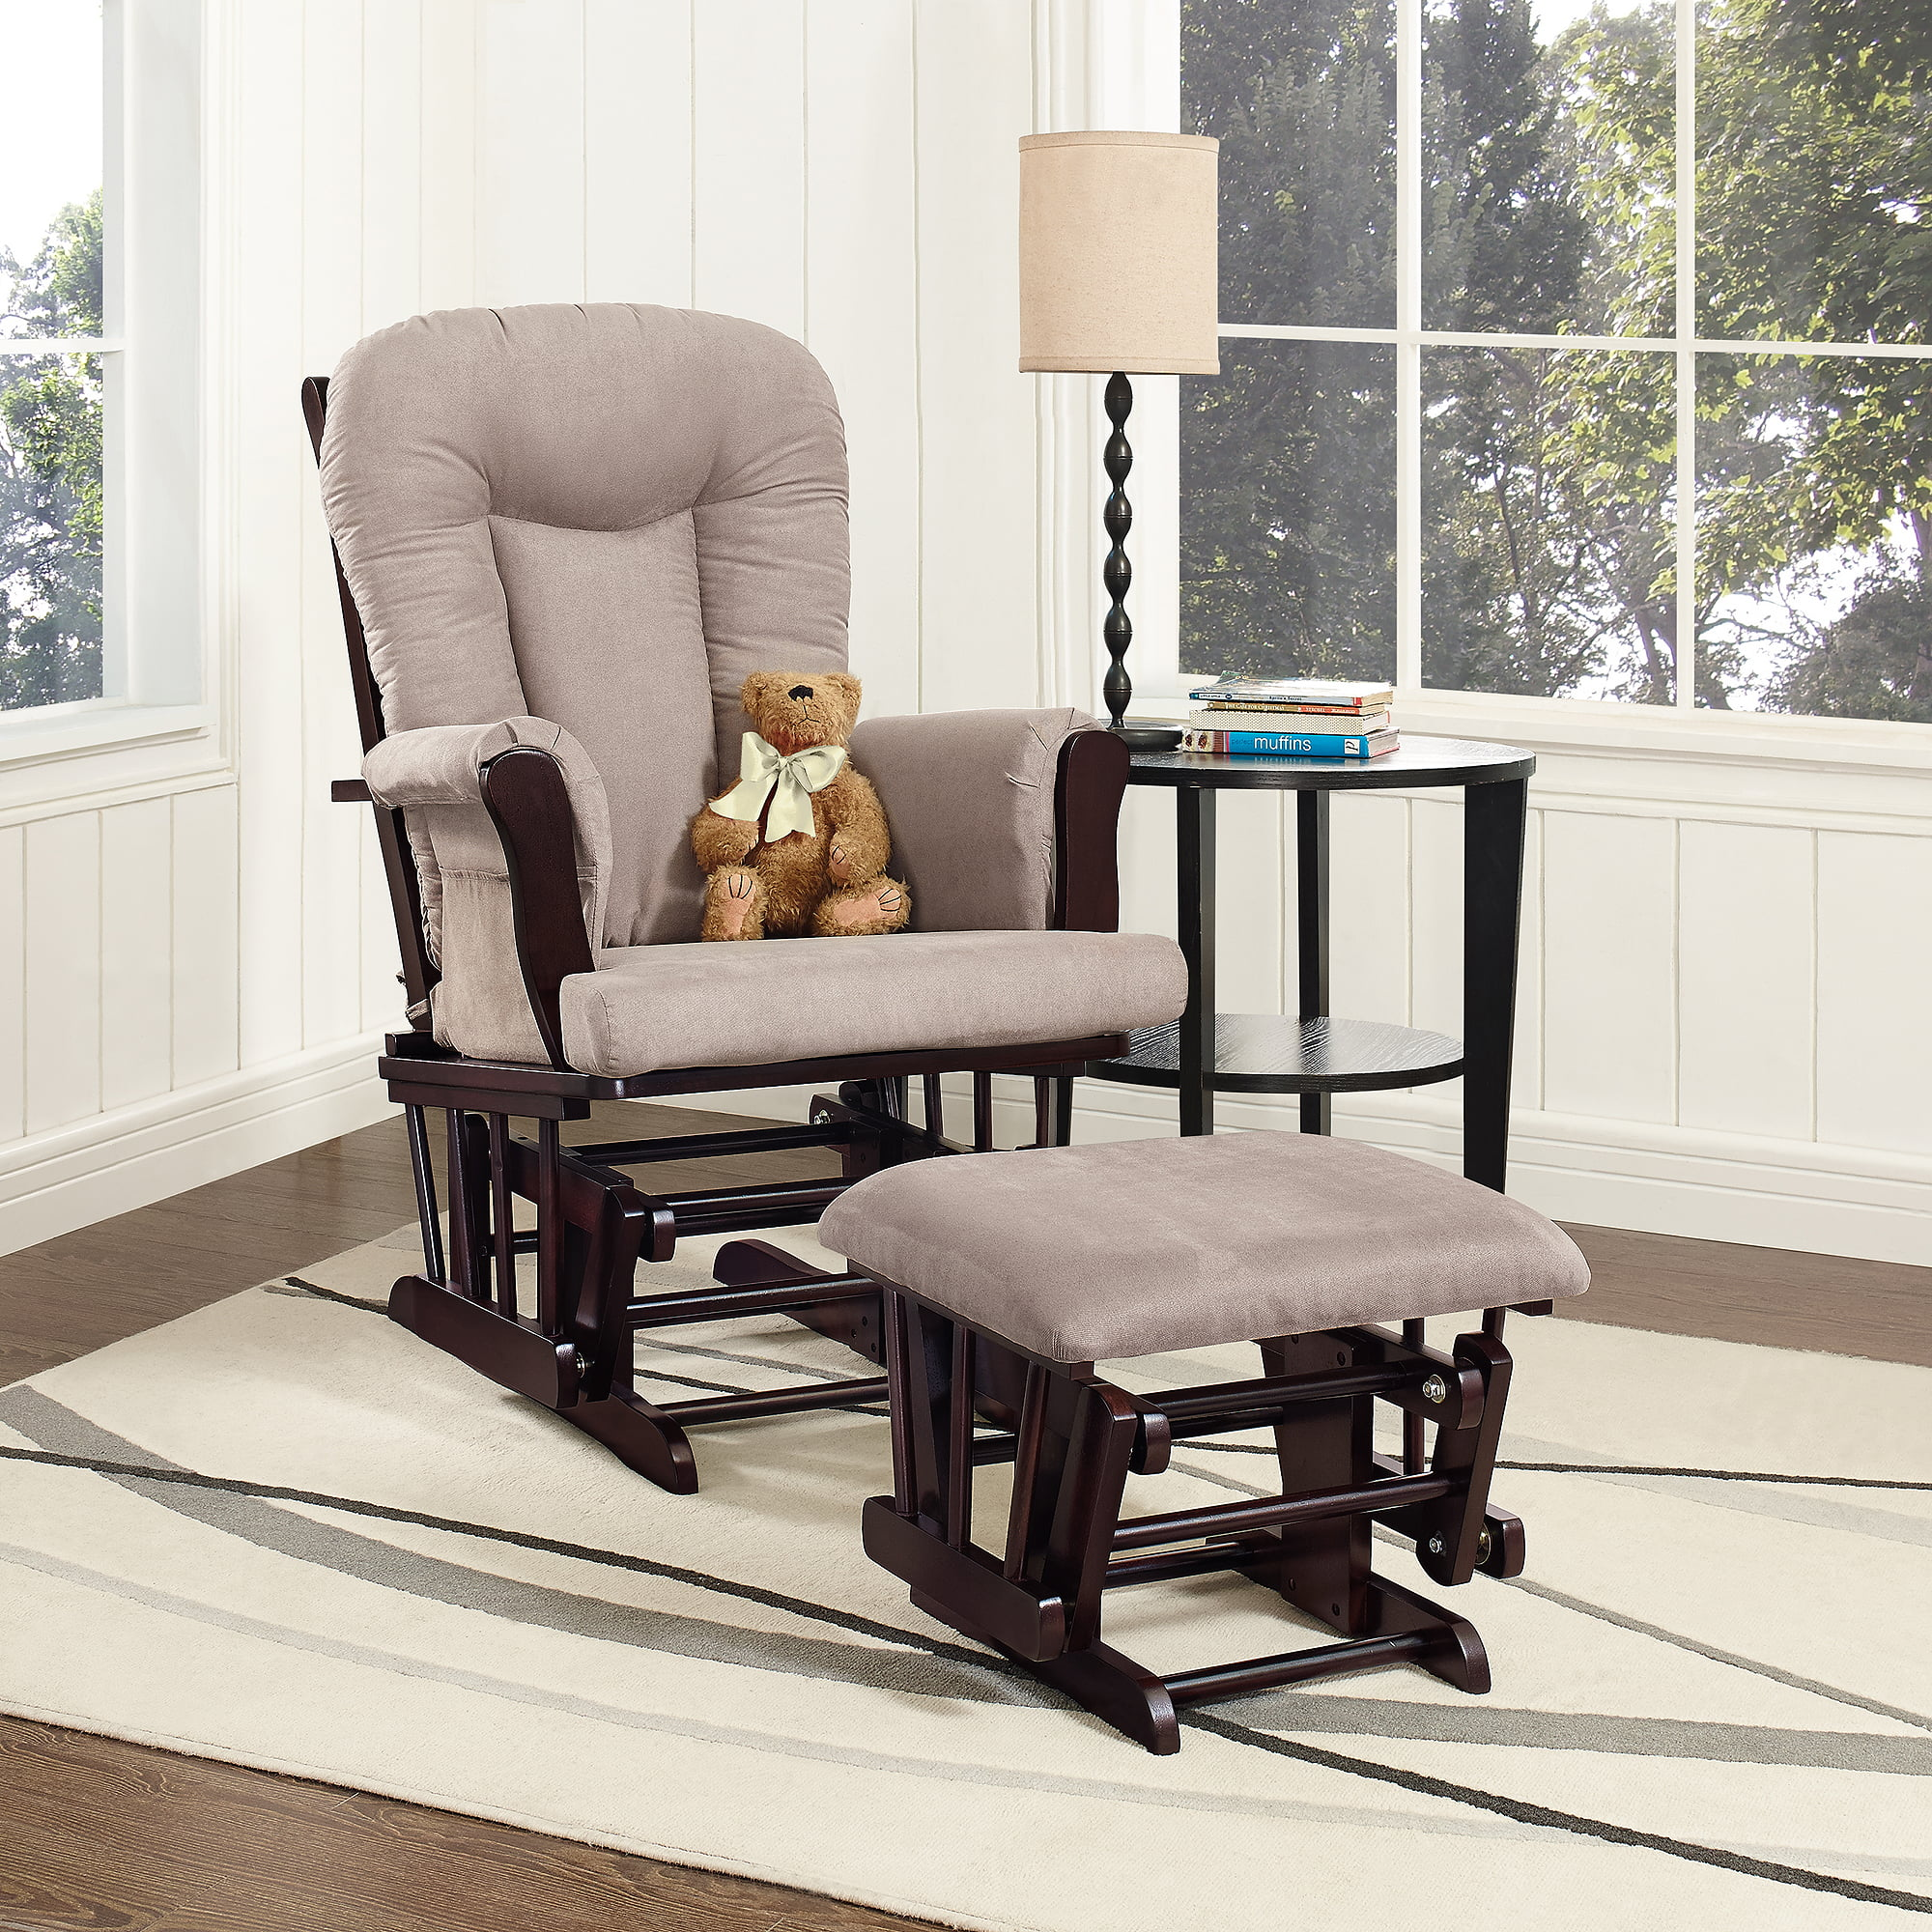 Baby Relax Evan Swivel Glider And Ottoman Gray   Walmart.com